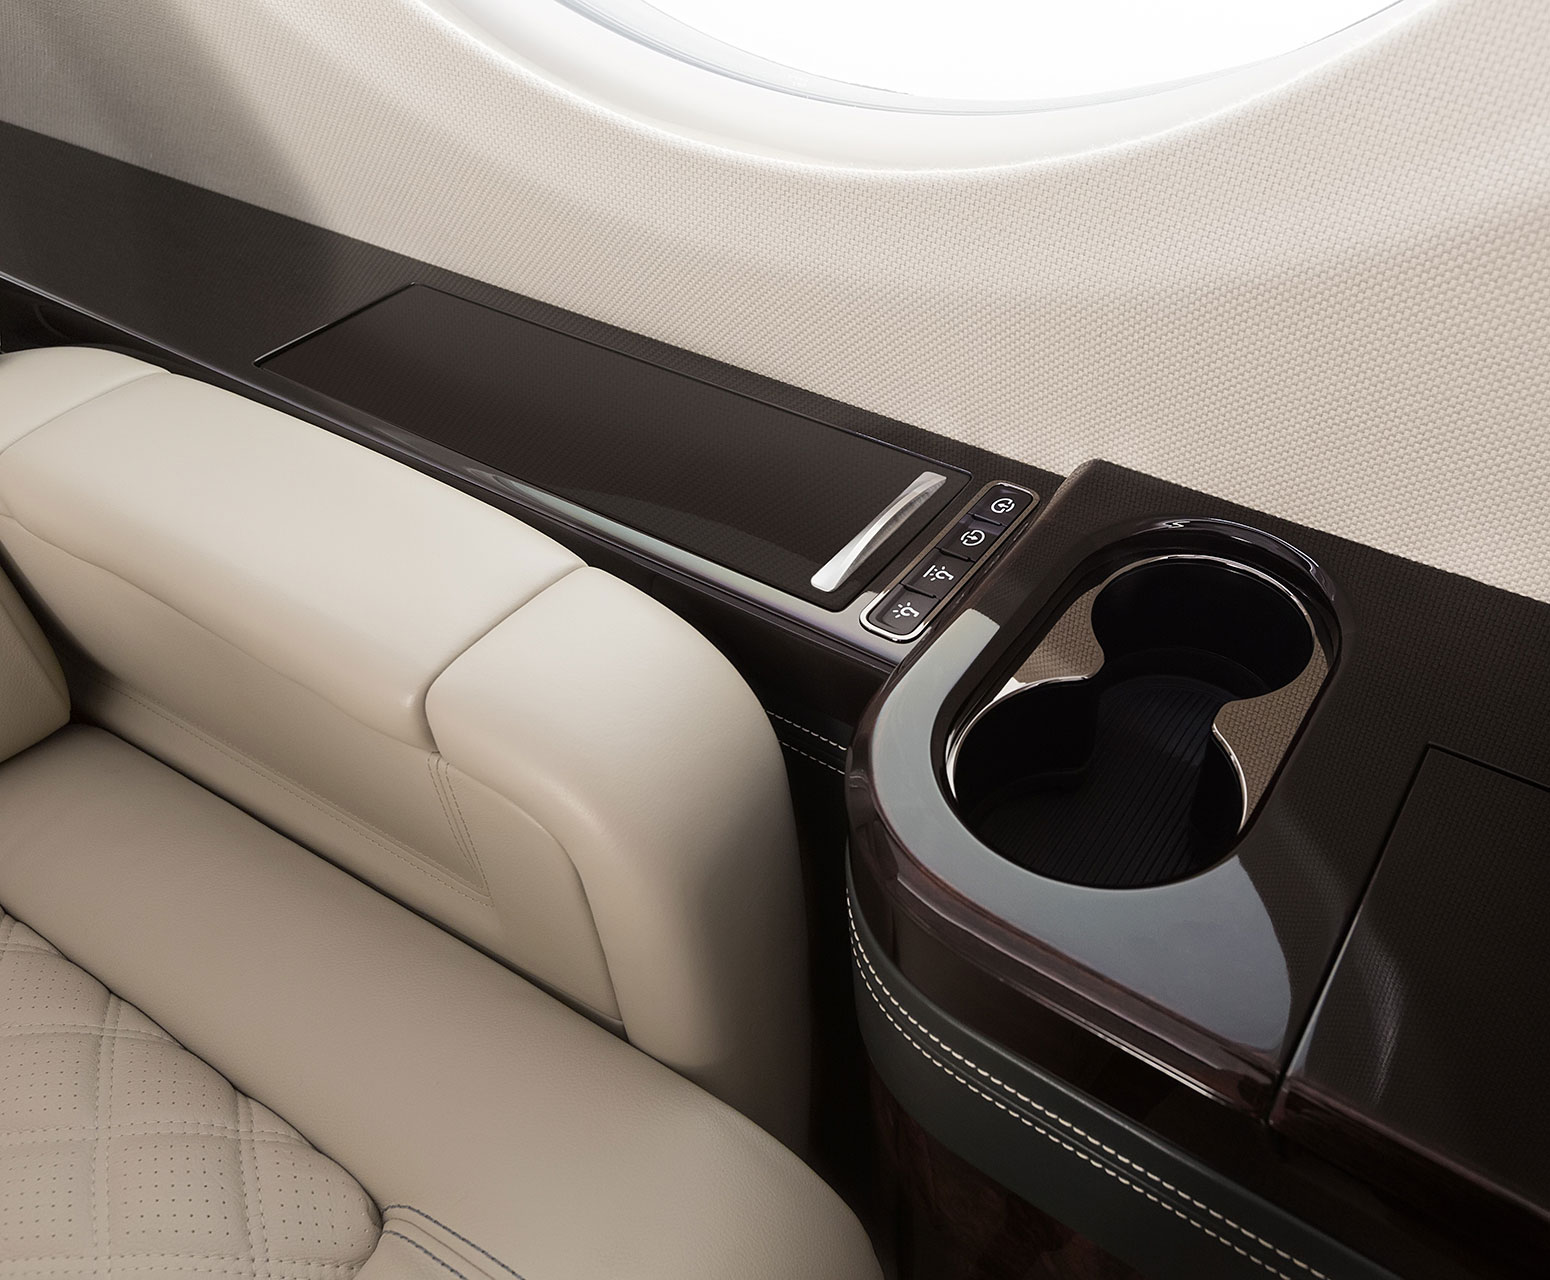 Gulfstream G500 leather seat and cup holder